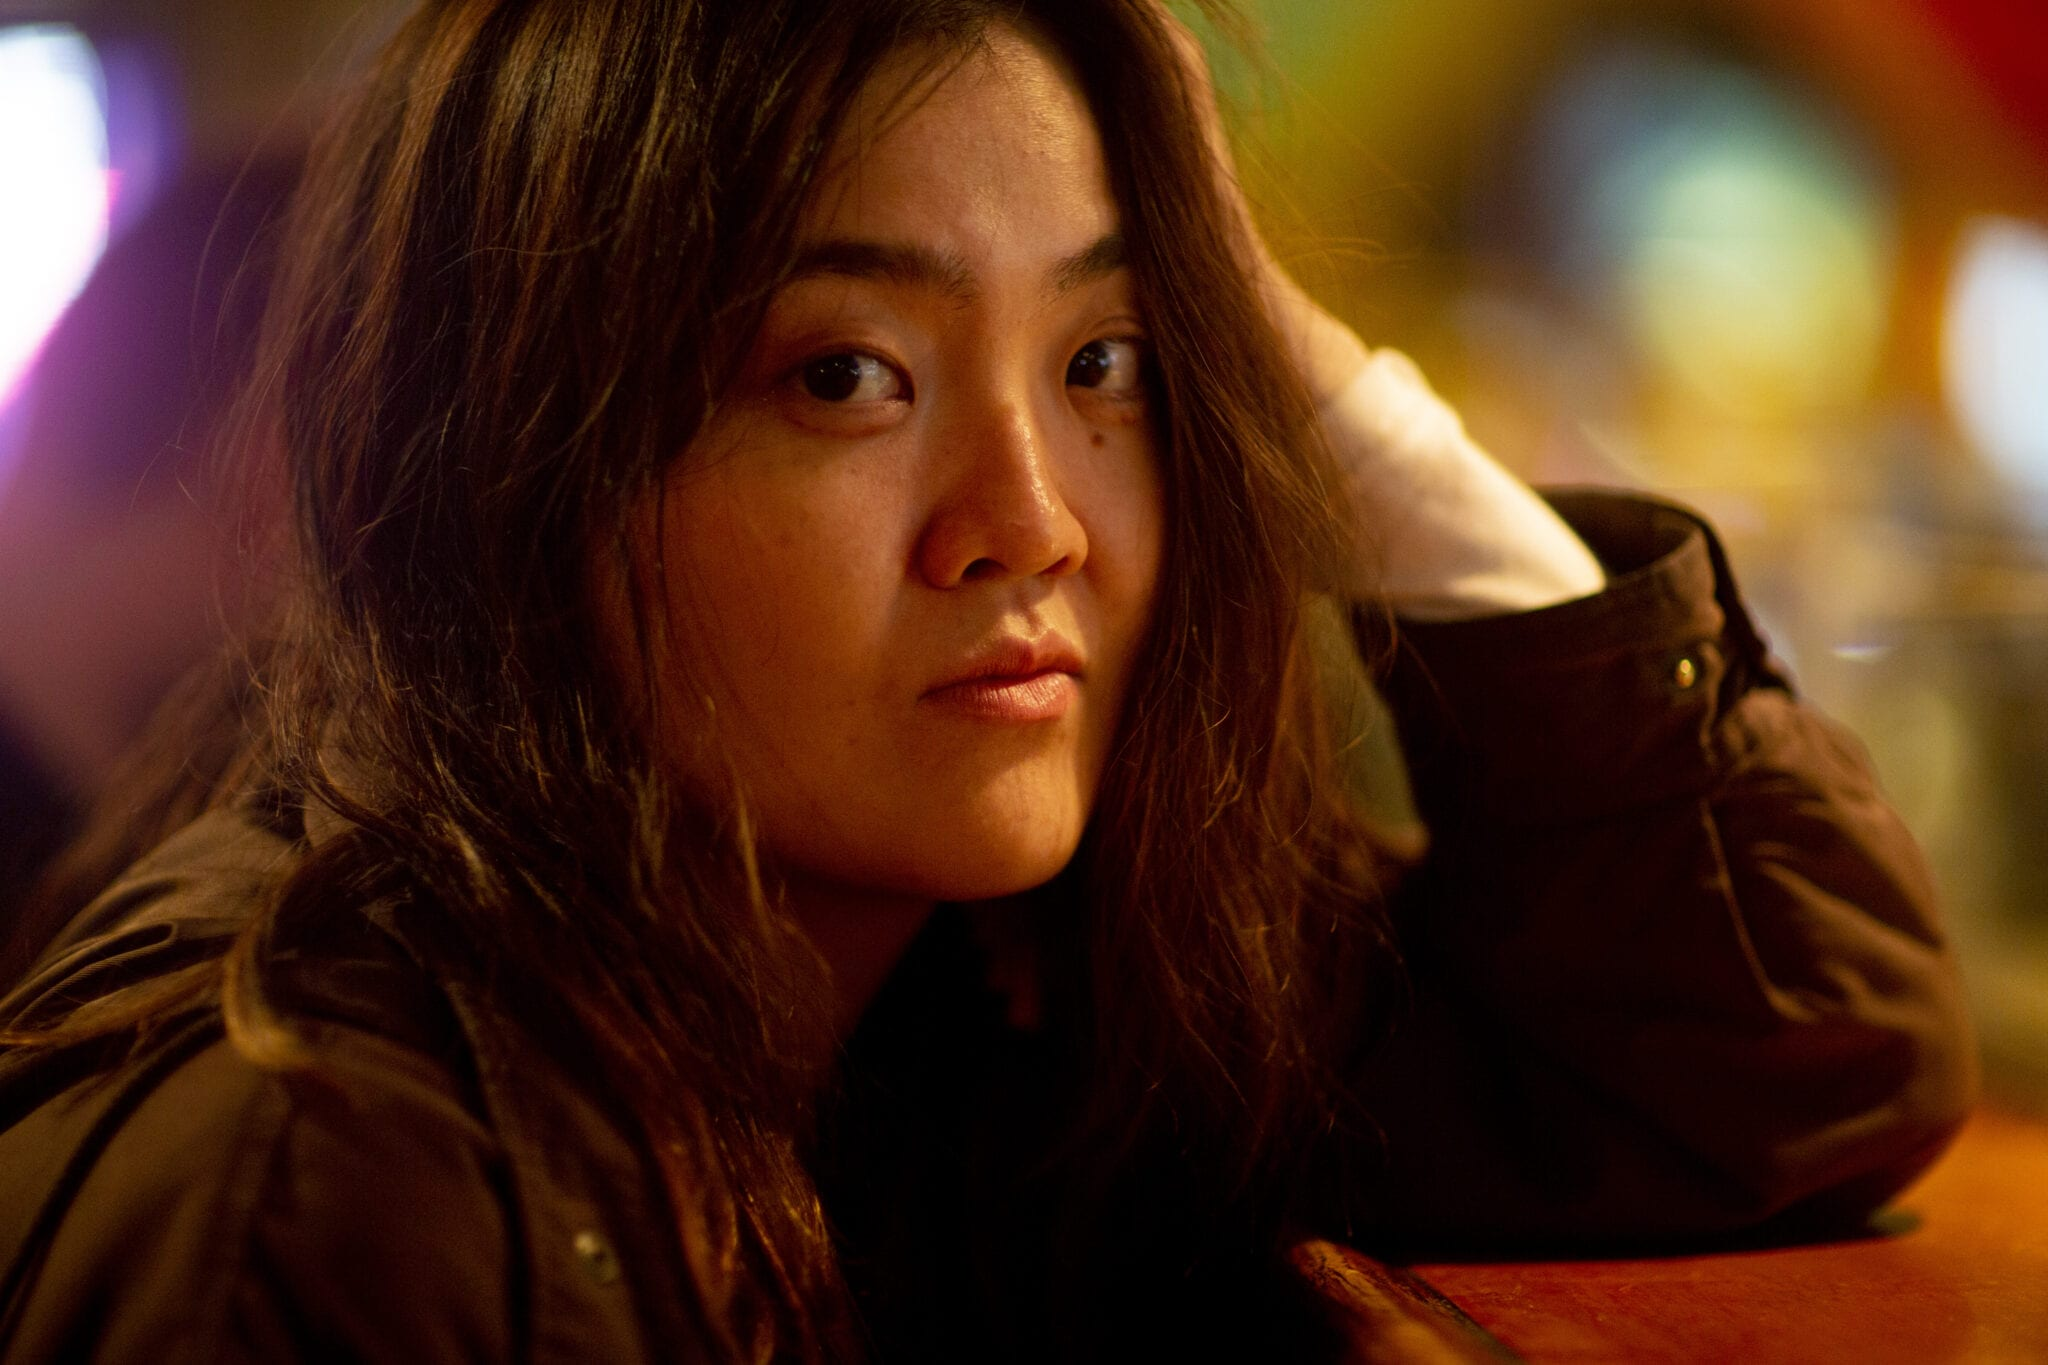 Interview With Kana Hatakeyama, Writer, Director, Producer, And Lead Actor In Okaasan (mom)